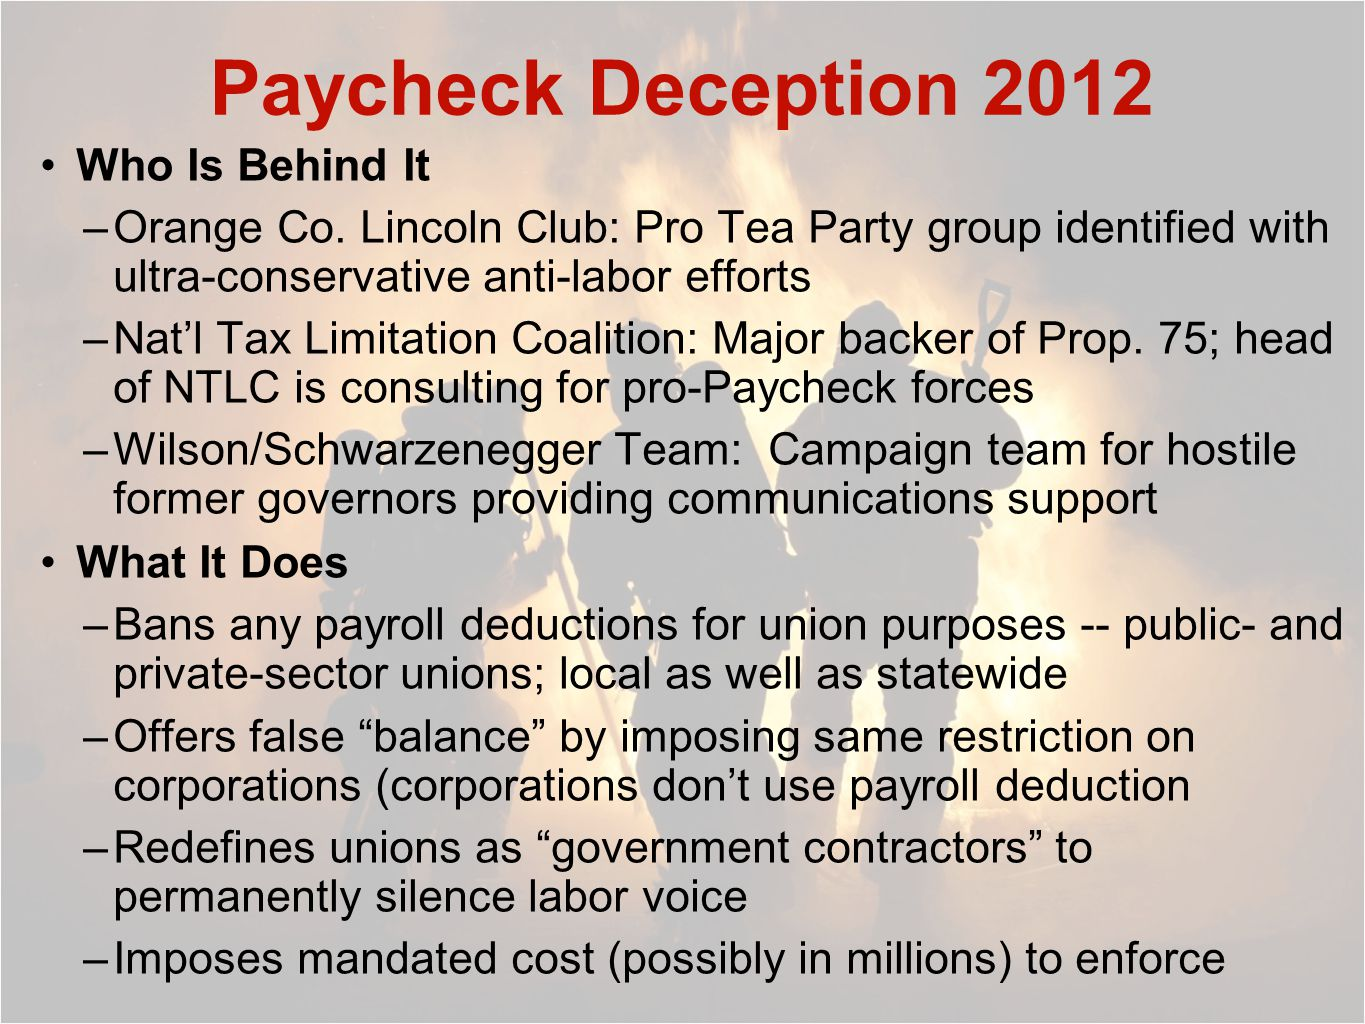 Breaking It Down Official Title and Summary: Prohibits Political Contributions by Payroll Deduction.